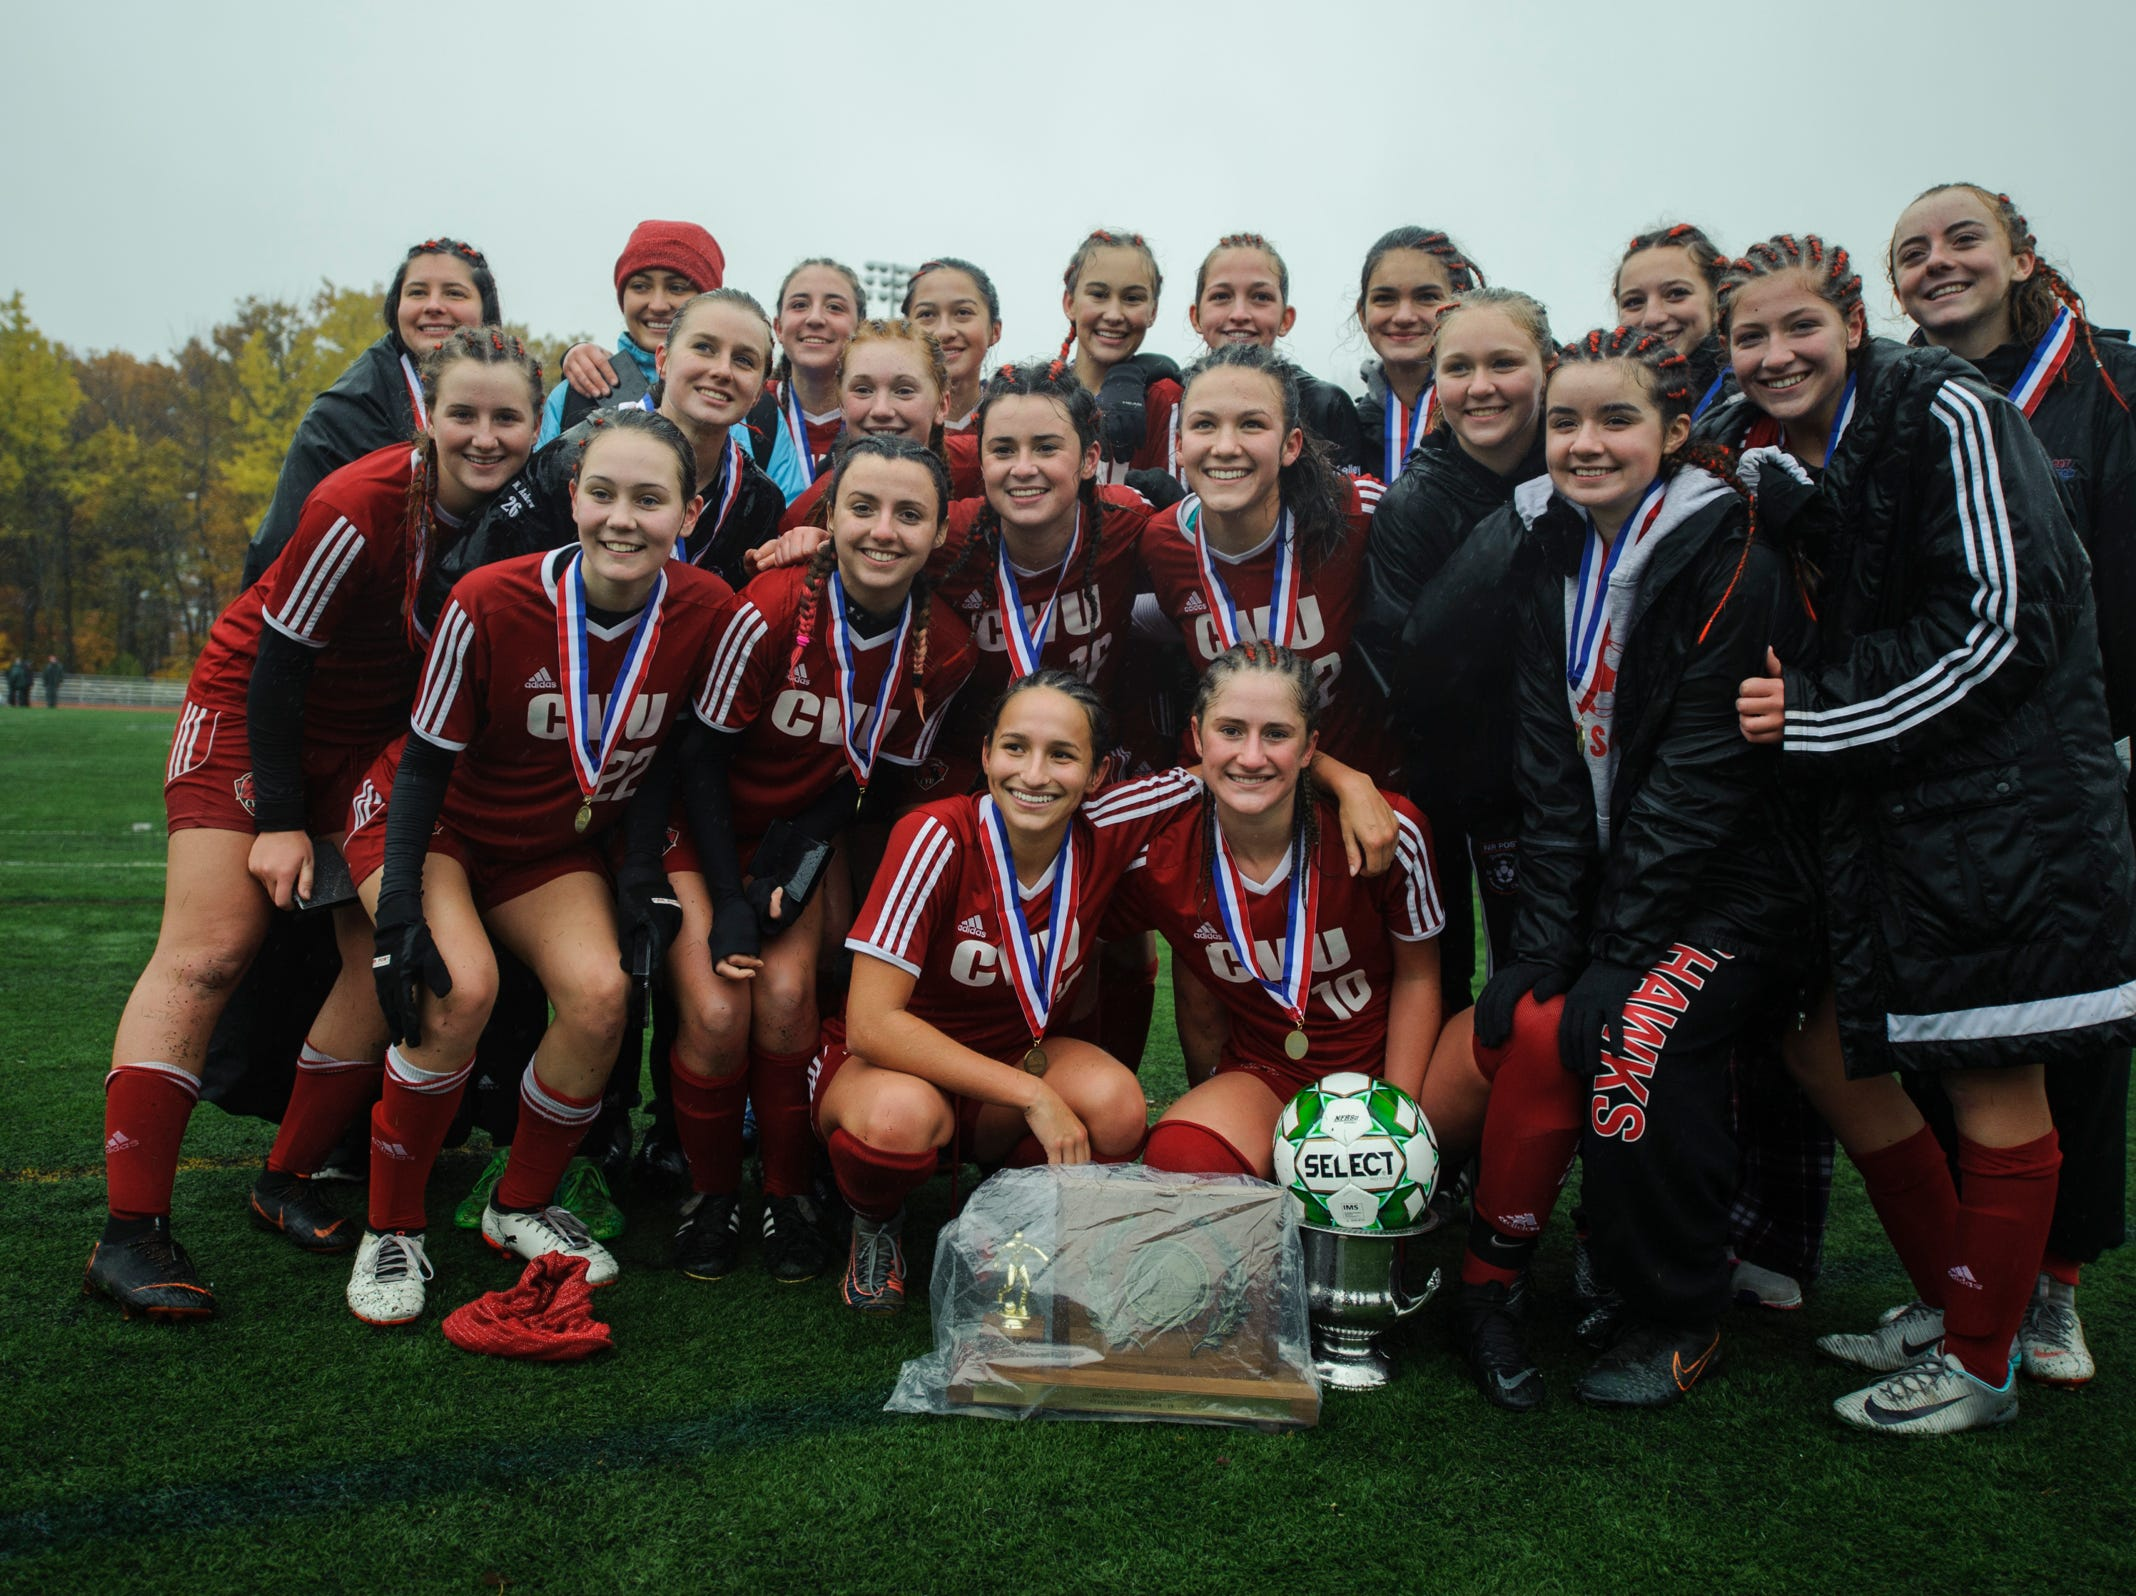 Champlain Valley players celebrate following their 1-0 win in the Division I girls soccer championship game between the Colchester Lakers and the Champlain Valley Union Redhawks at Buck Hard Field on Saturday morning November 3, 2018 in Burlington.